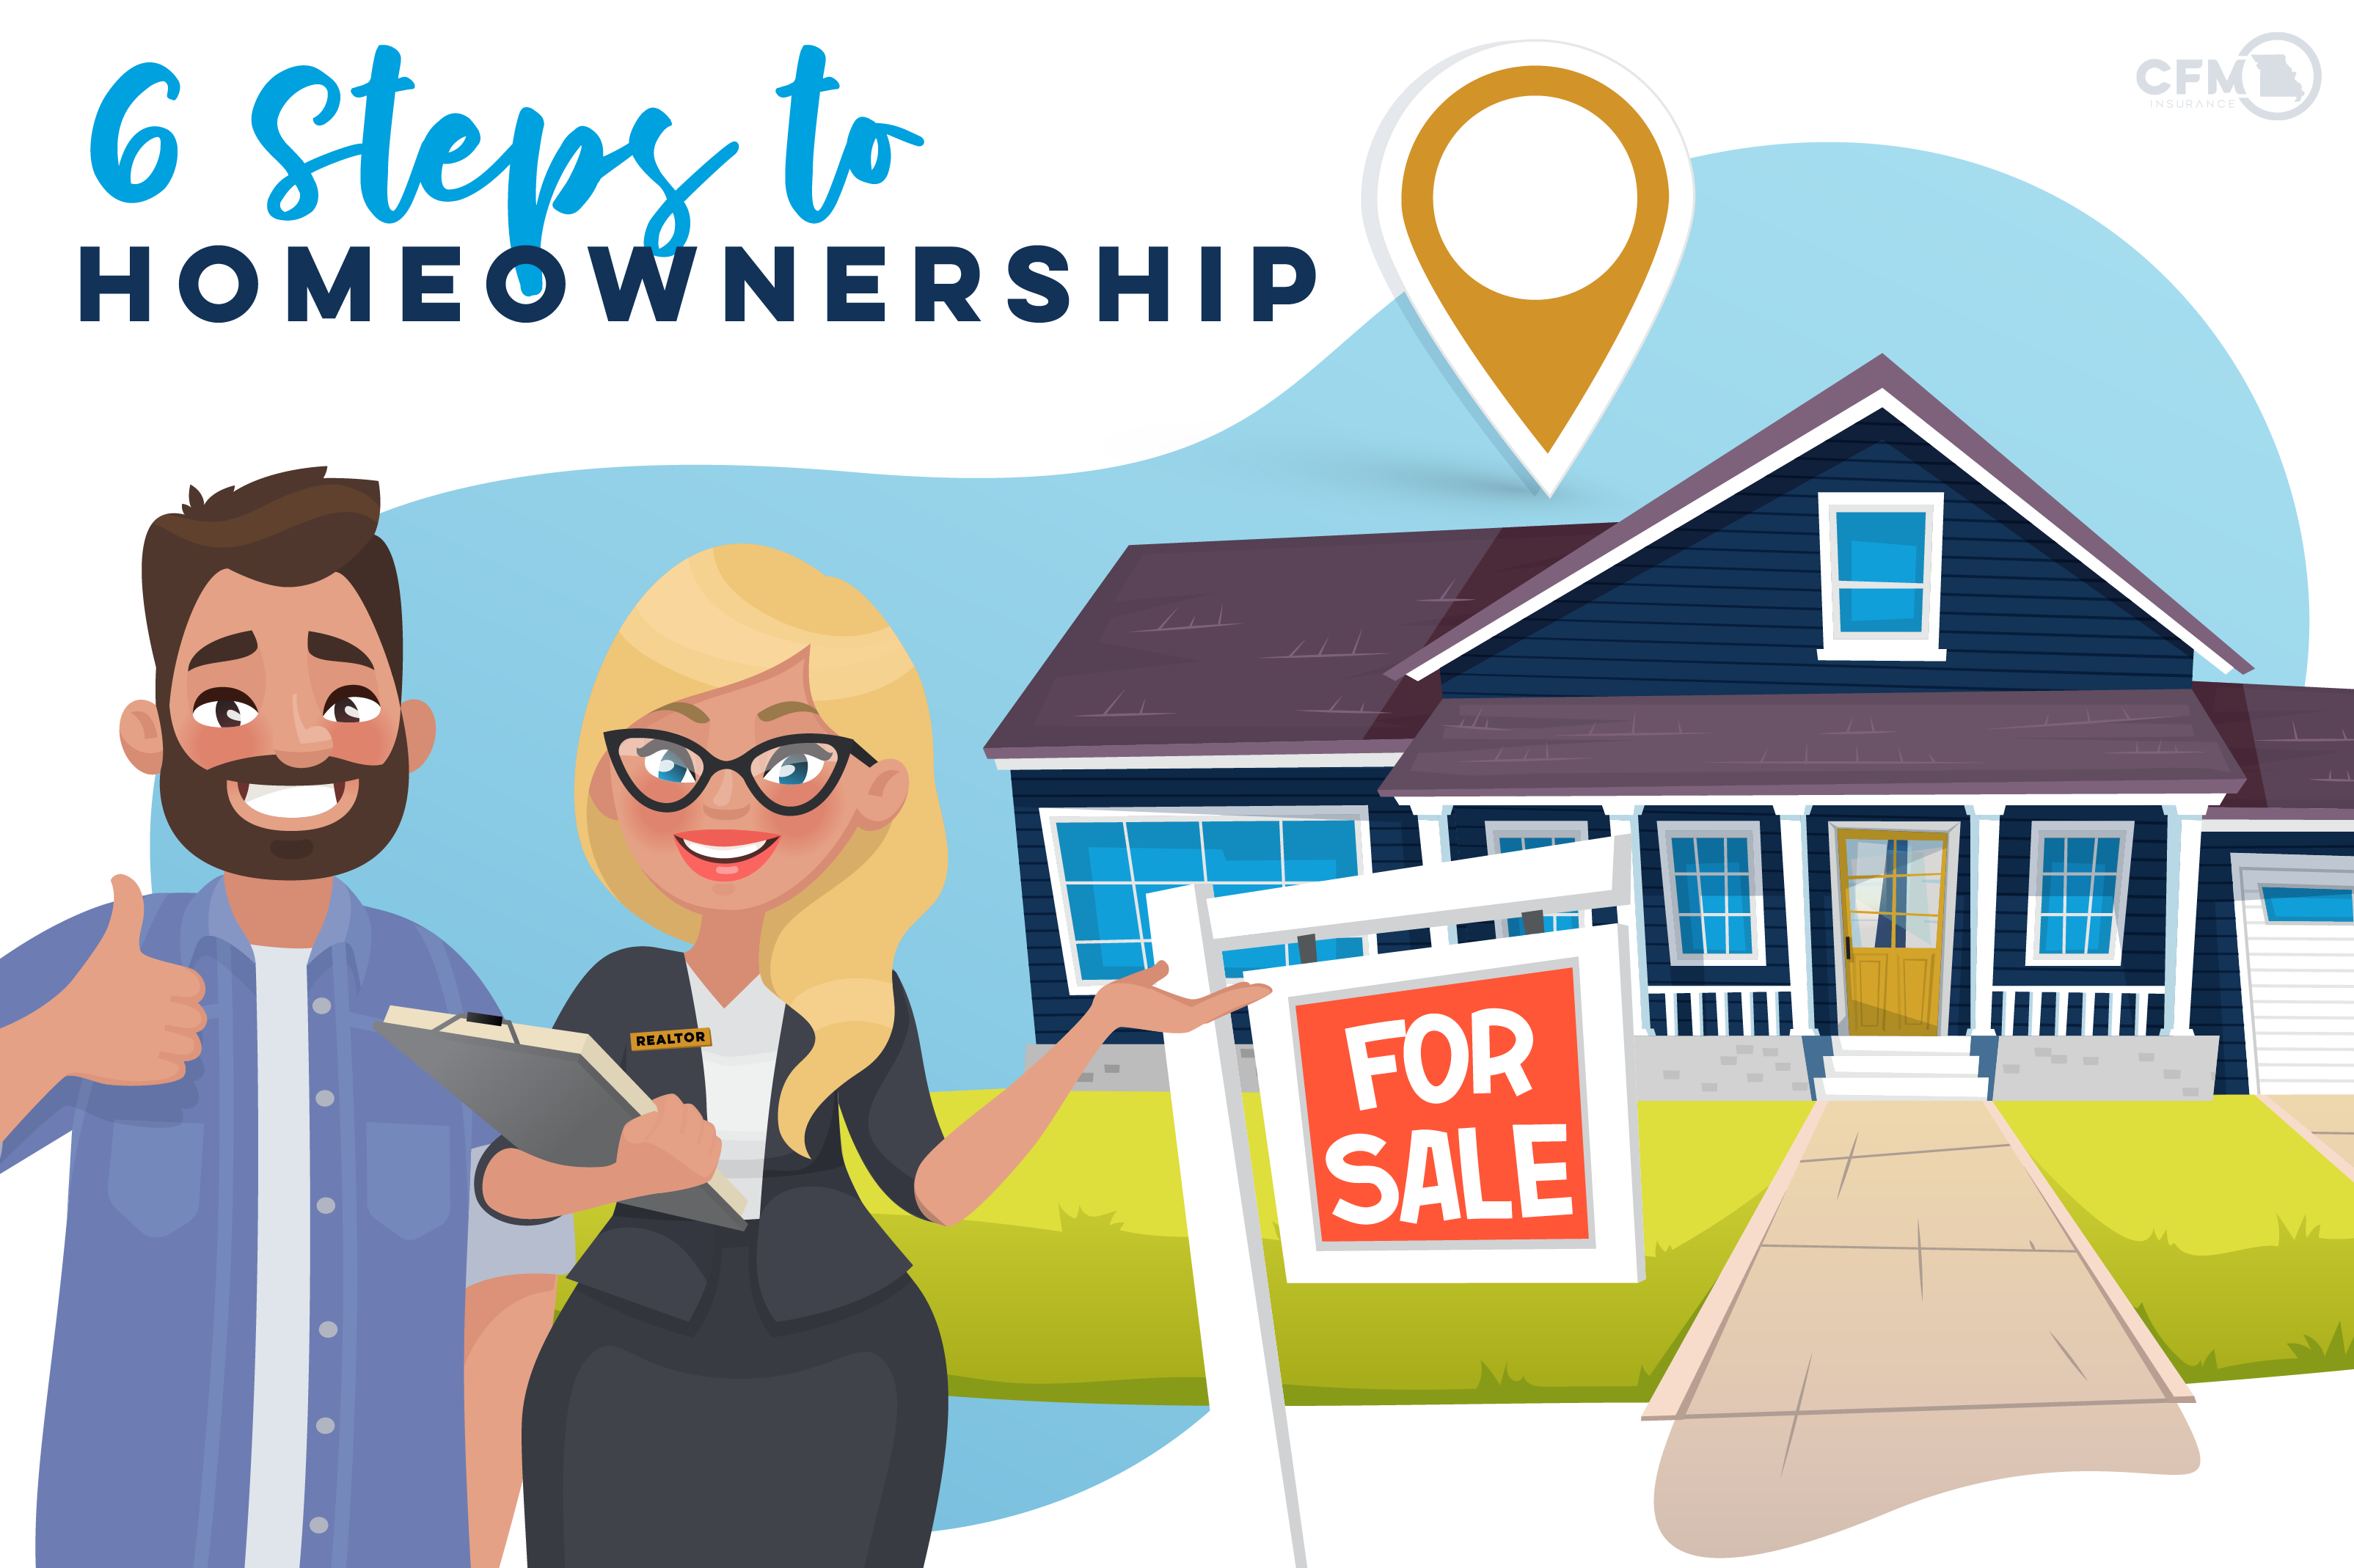 3. 4101B_6 Steps to Homeownership_Blog-01